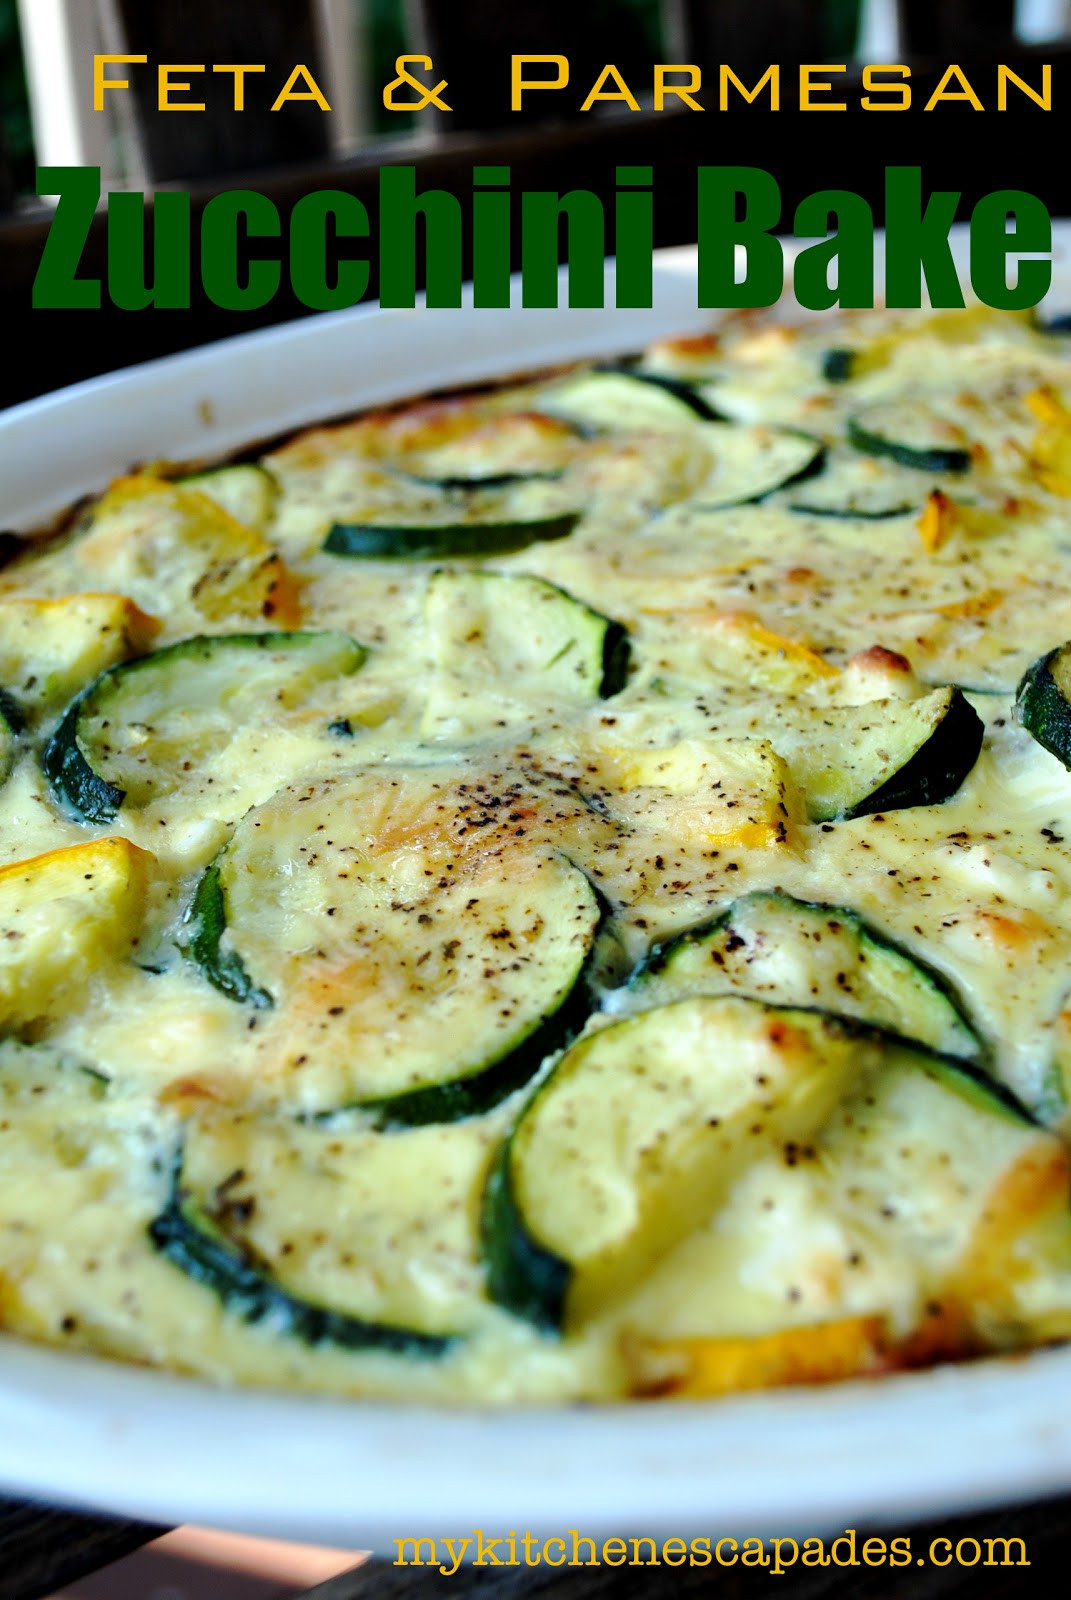 Baked Zucchini Recipes Healthy  Baked Zucchini with Feta and Parmesan Cheese Low Carb